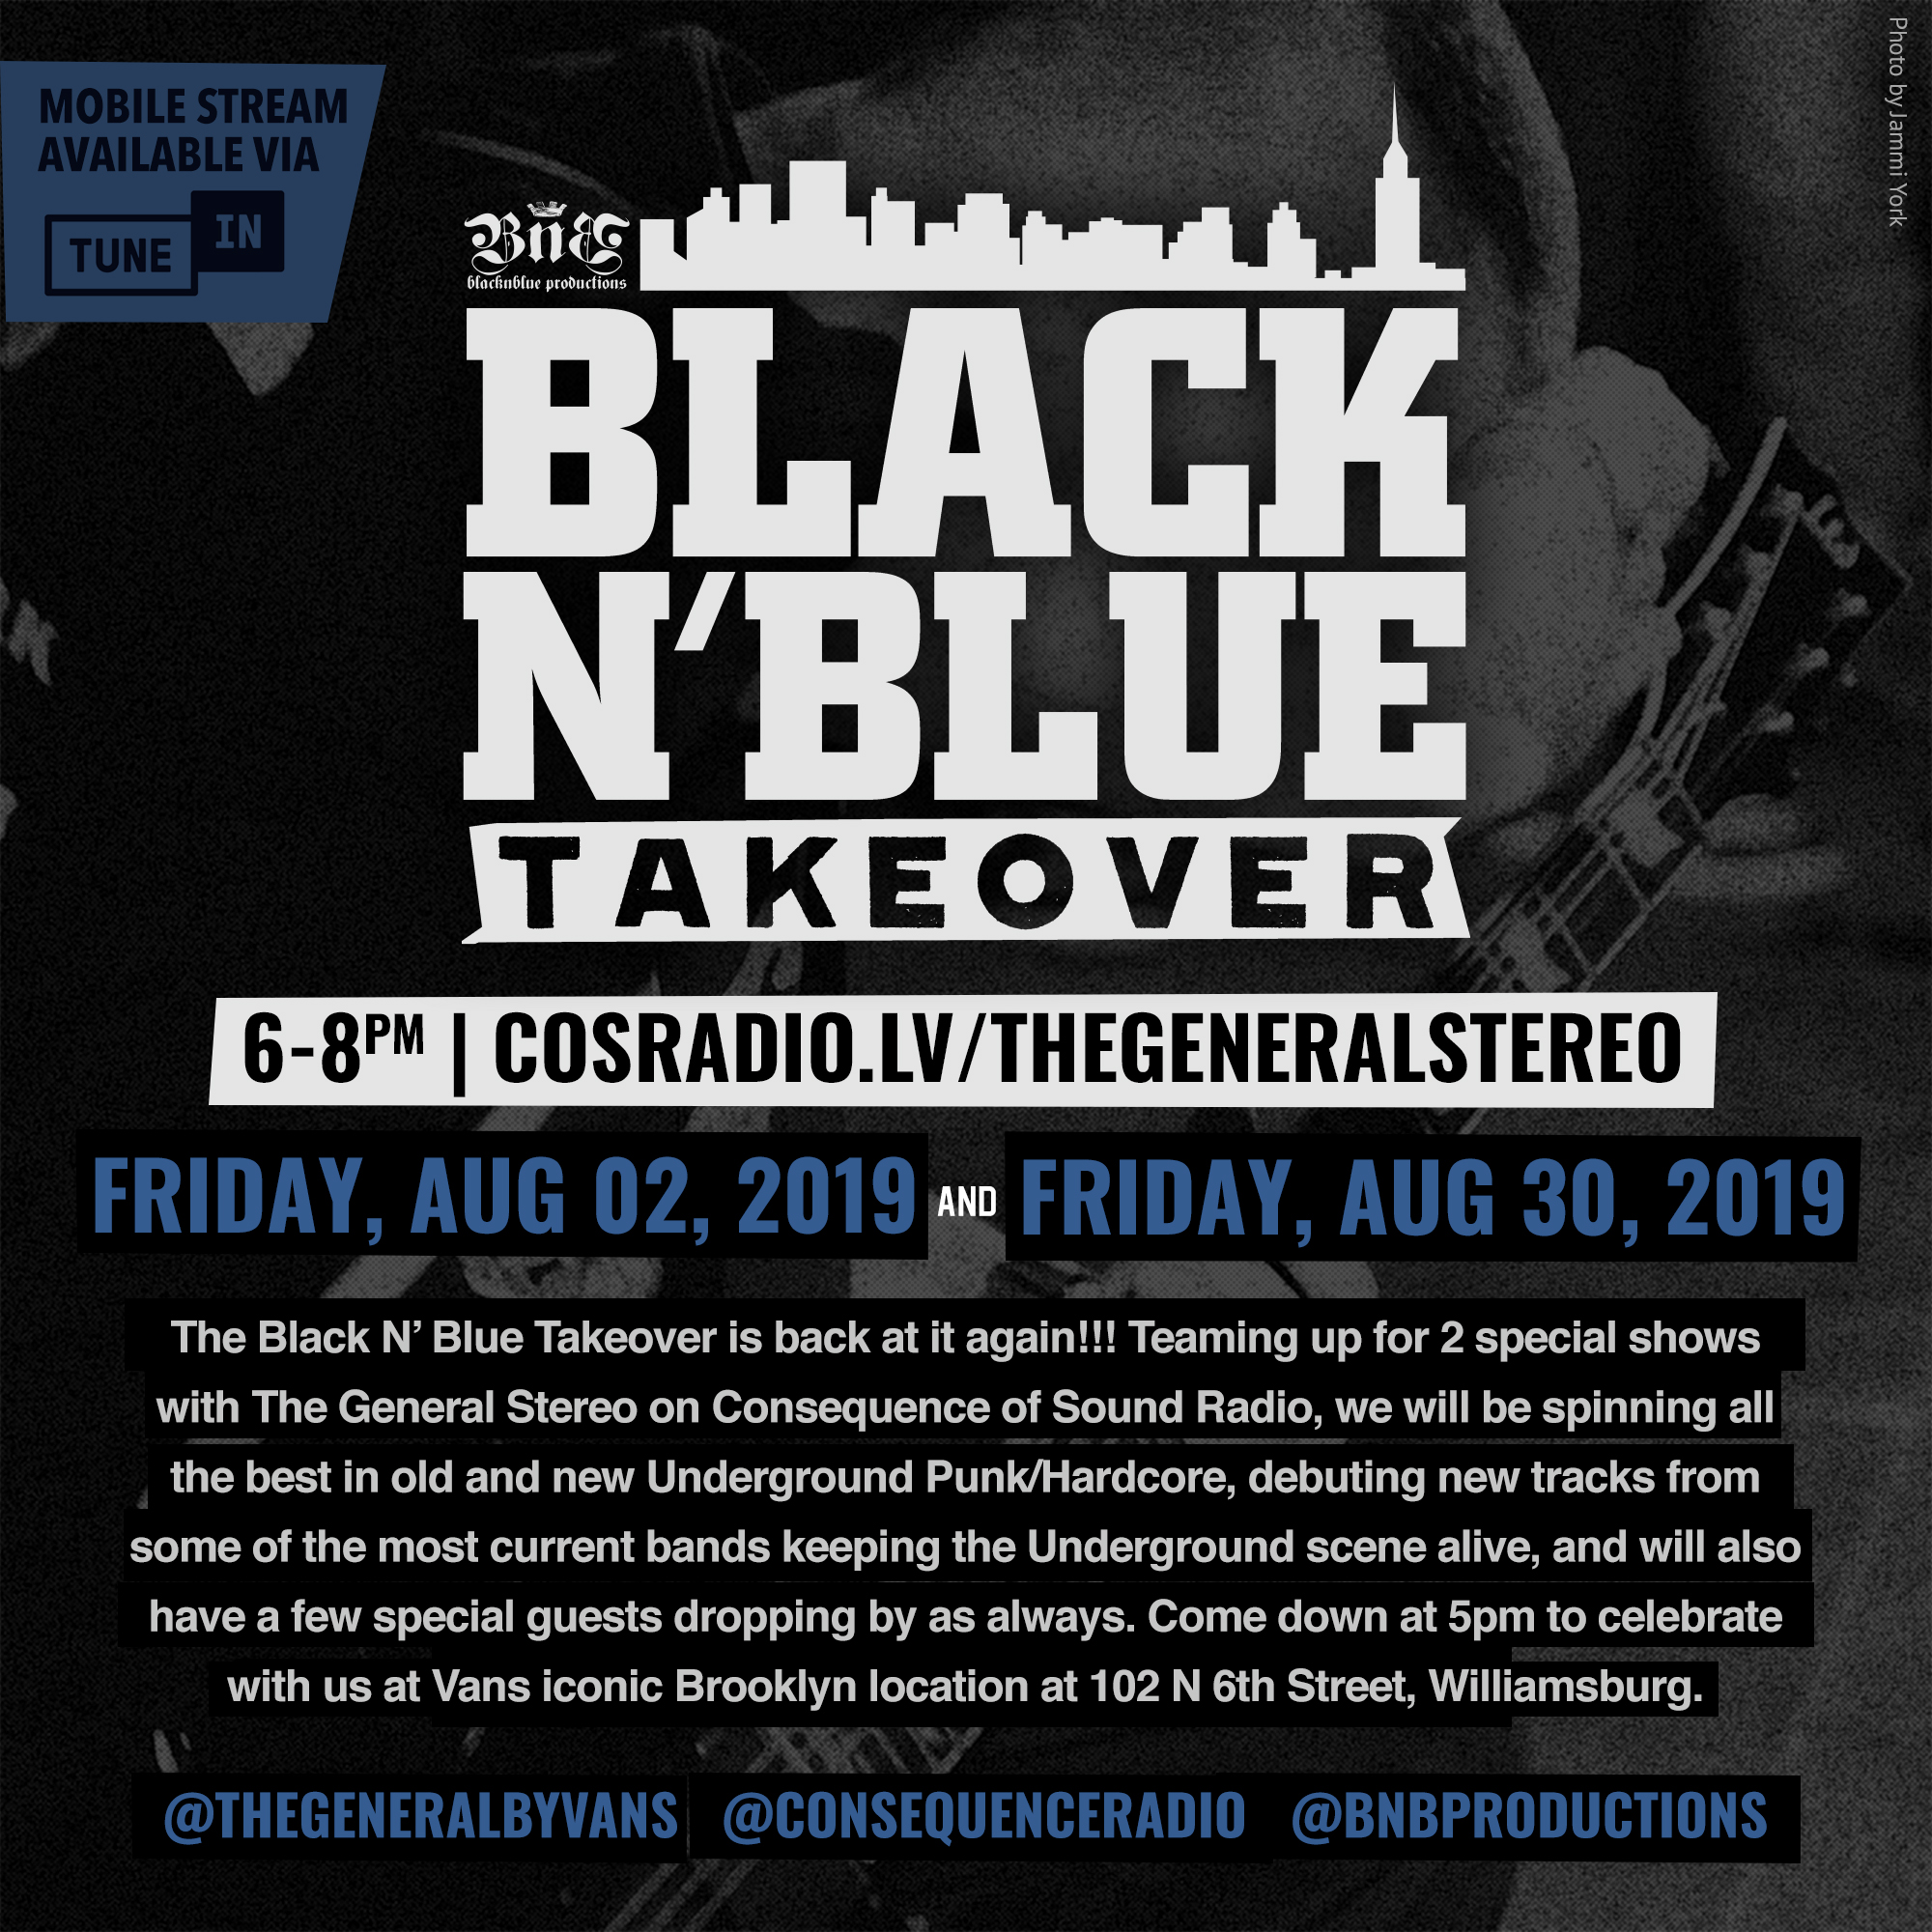 Black N' Blue Takeover x The General Stereo